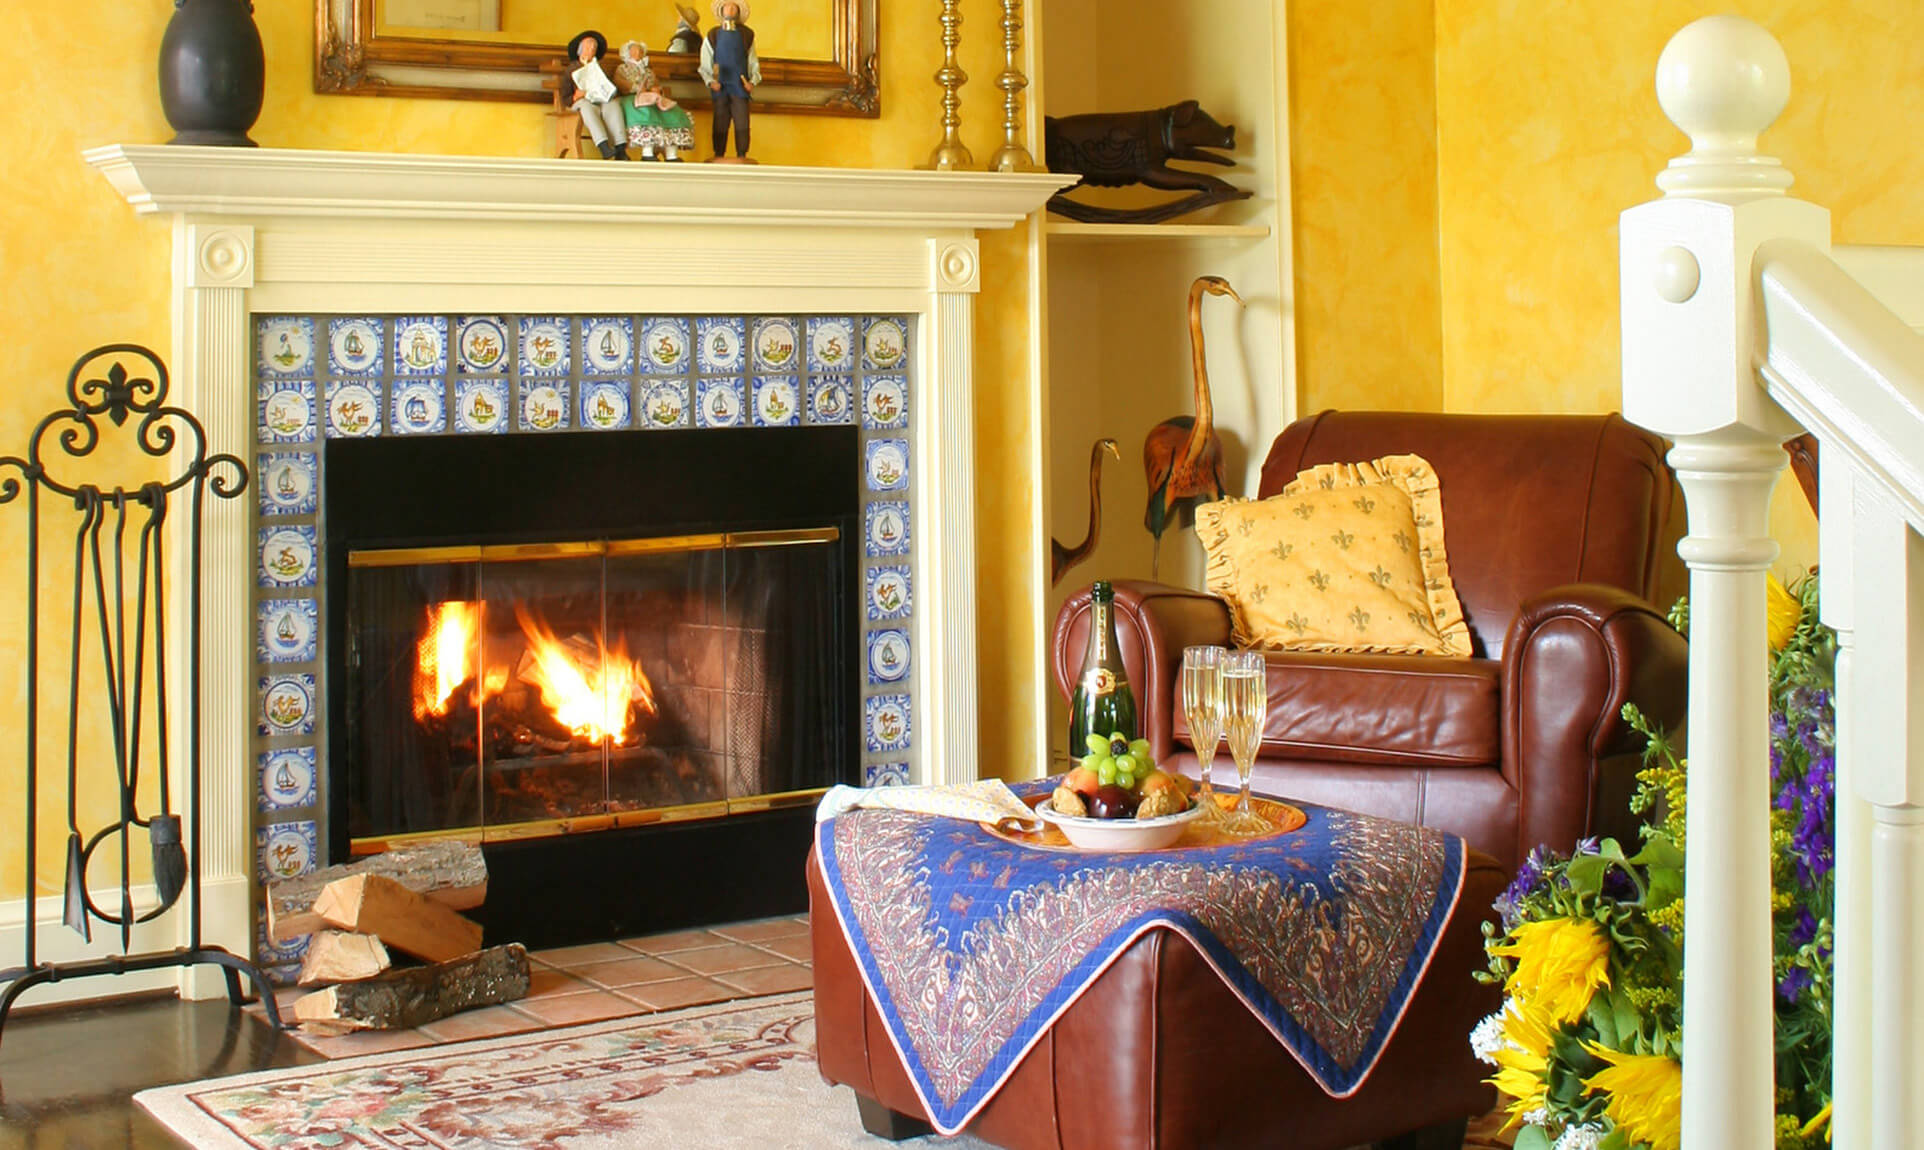 Van Gogh Suite fireplace and chair at our Northern Virginia bed and breakfast